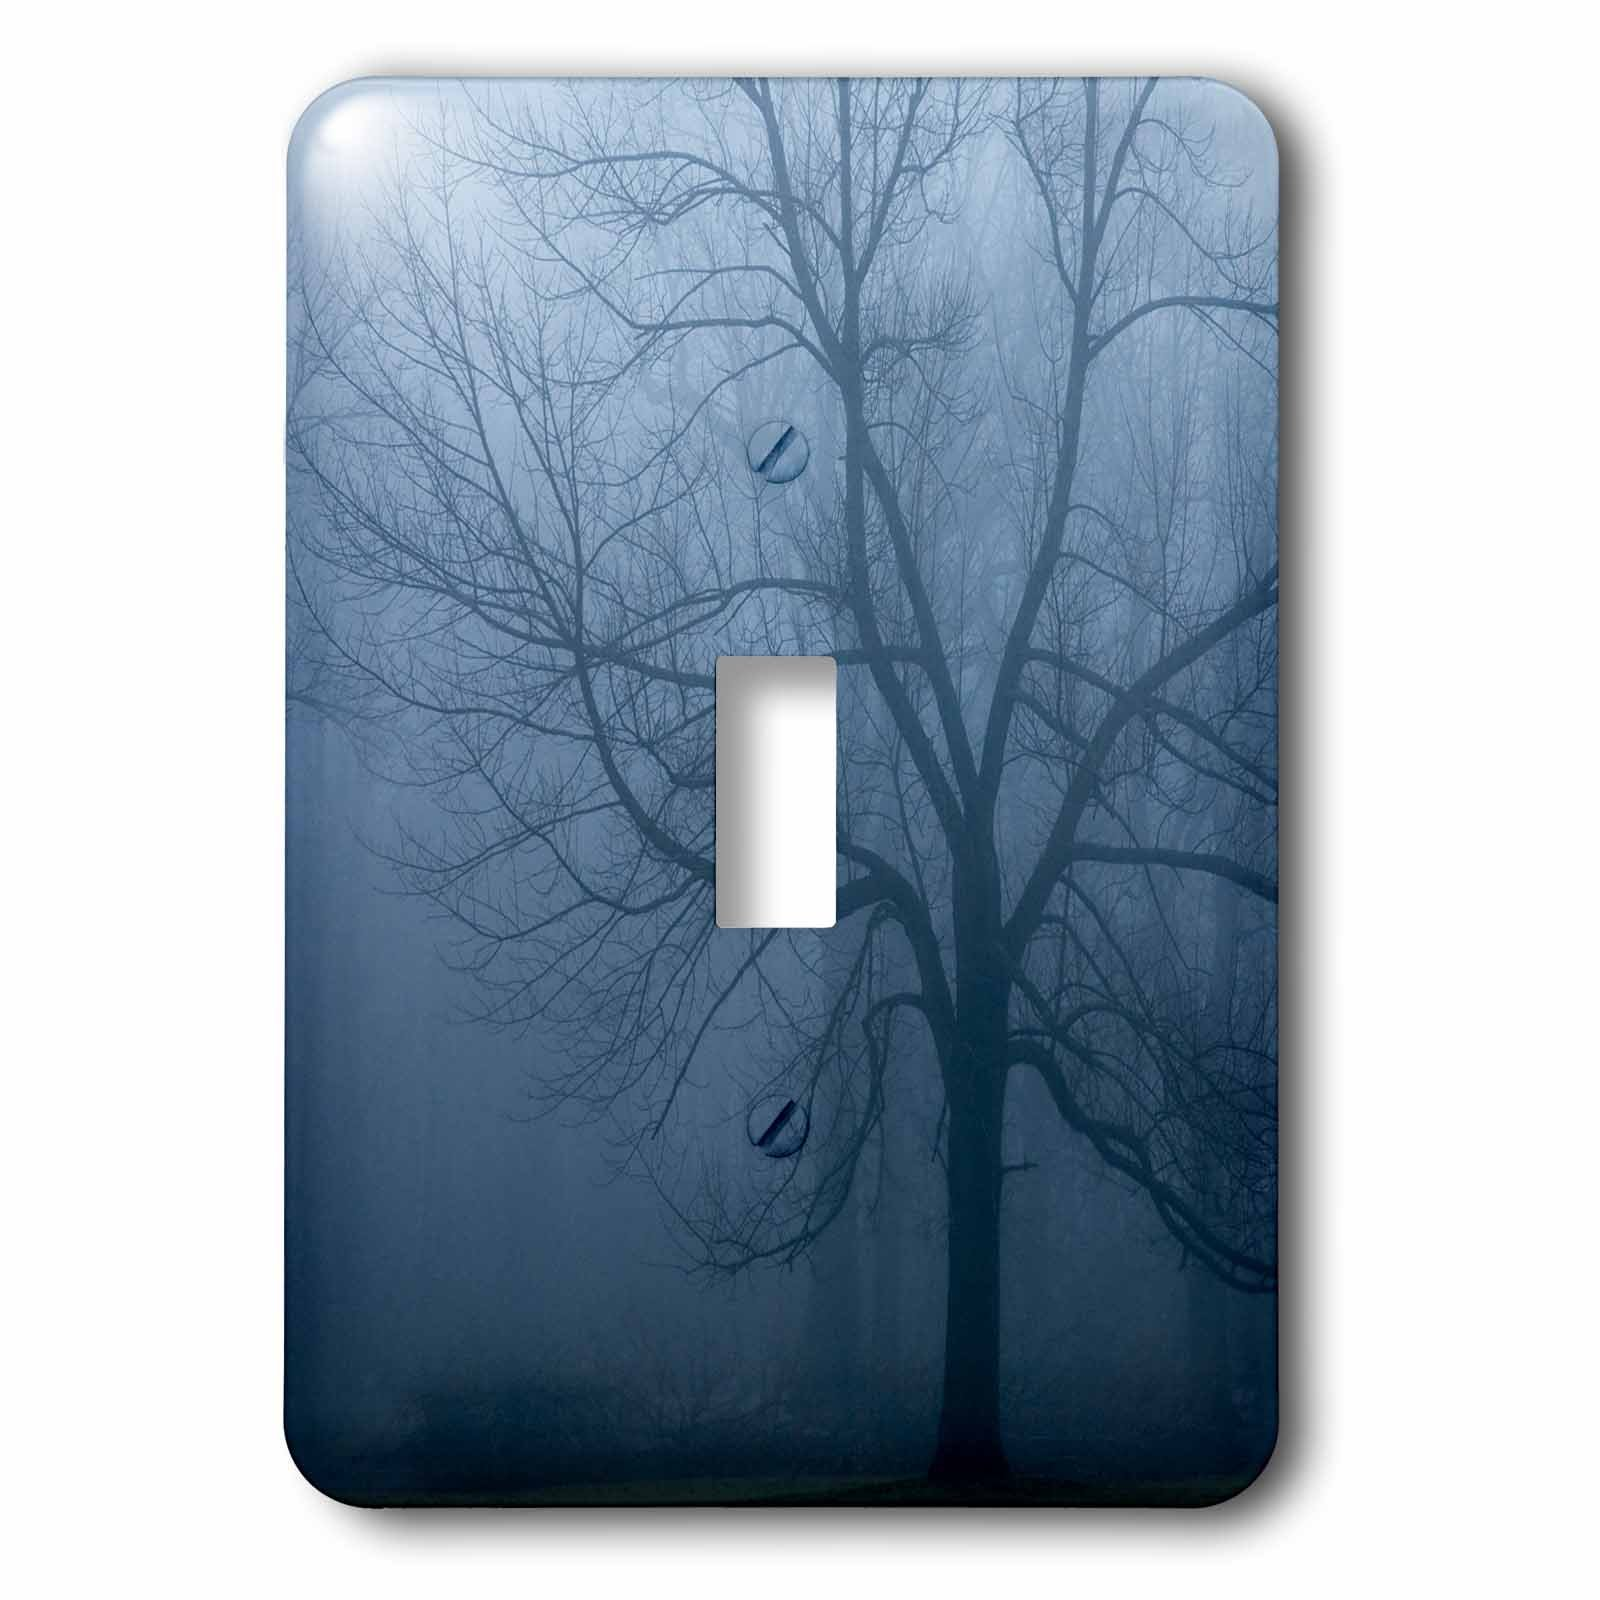 Danita Delimont - Trees - USA, Indiana. Skeleton tree in fog. - Light Switch Covers - single toggle switch (lsp_230784_1)